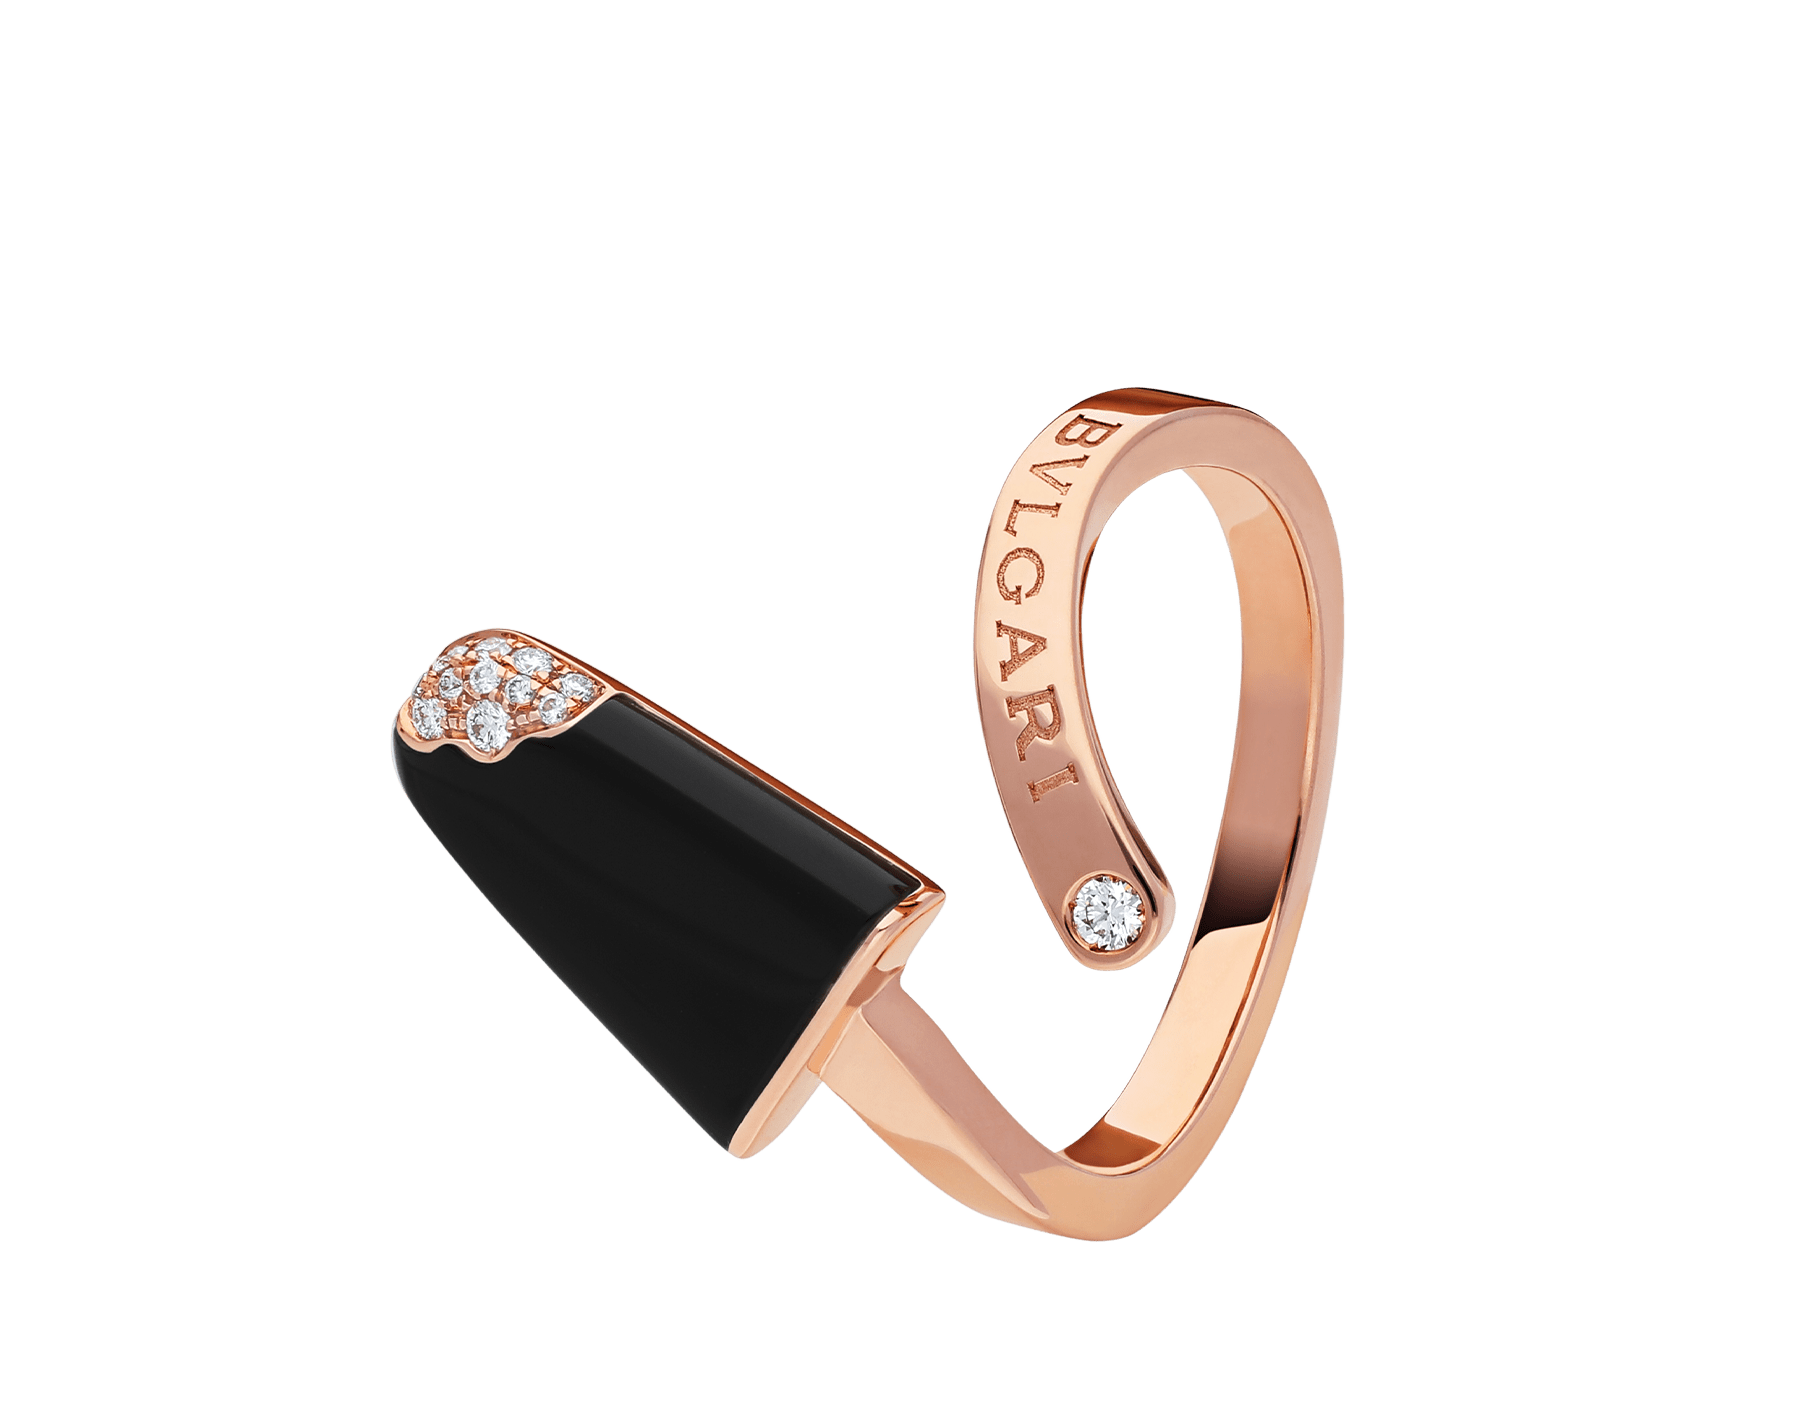 BVLGARI BVLGARI Gelati 18 kt rose gold ring set with onyx and pavé diamonds AN858499 image 2